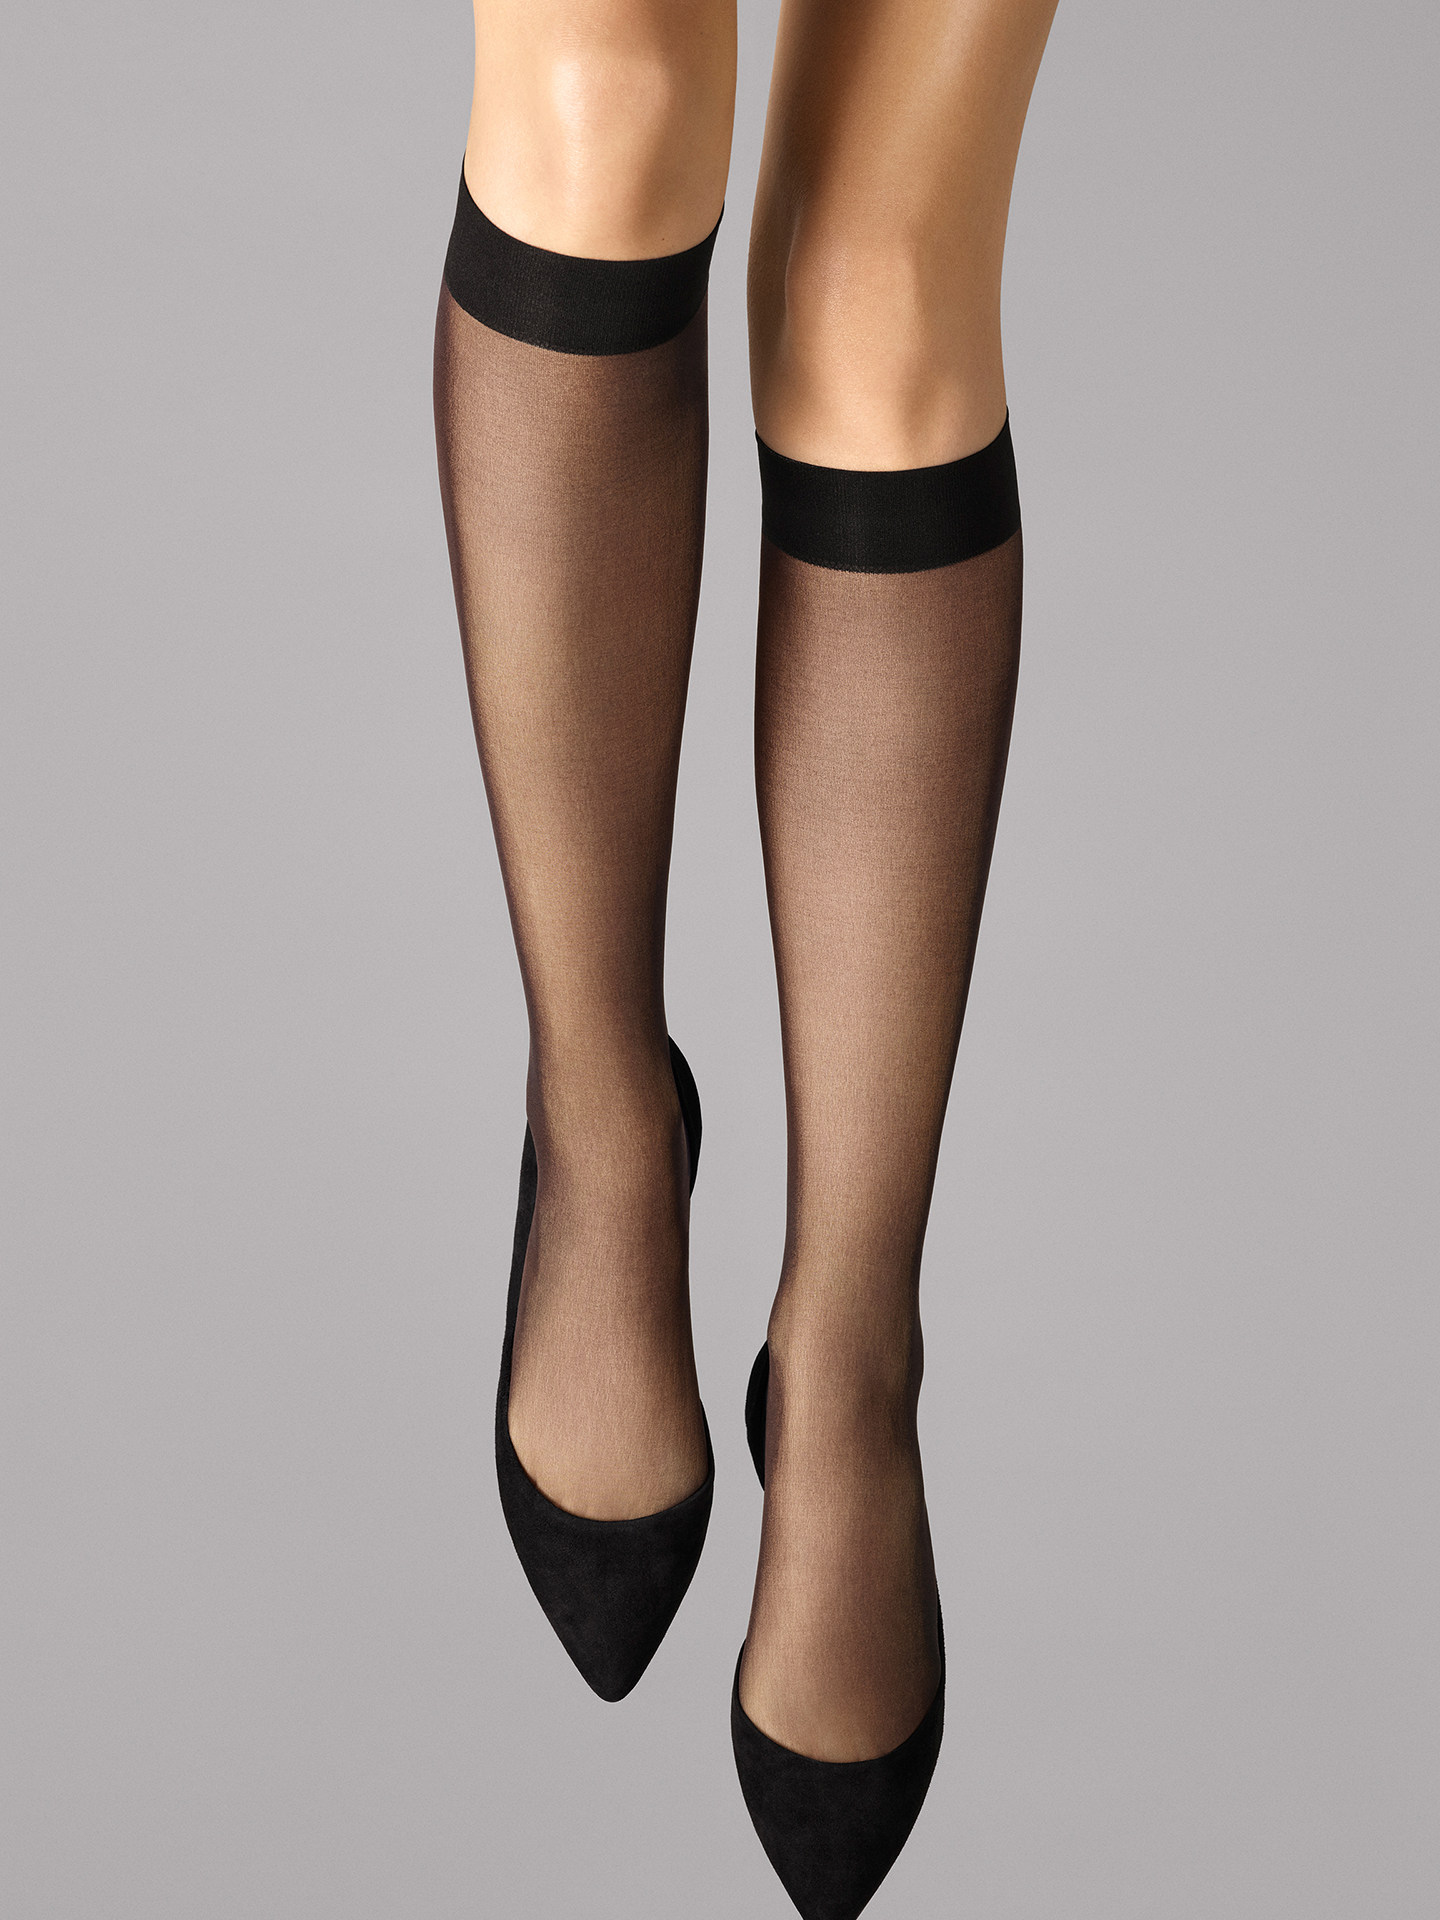 Wolford Apparel & Accessories > Clothing > Gambaletti Individual 10 Knee-Highs - 7005 - M